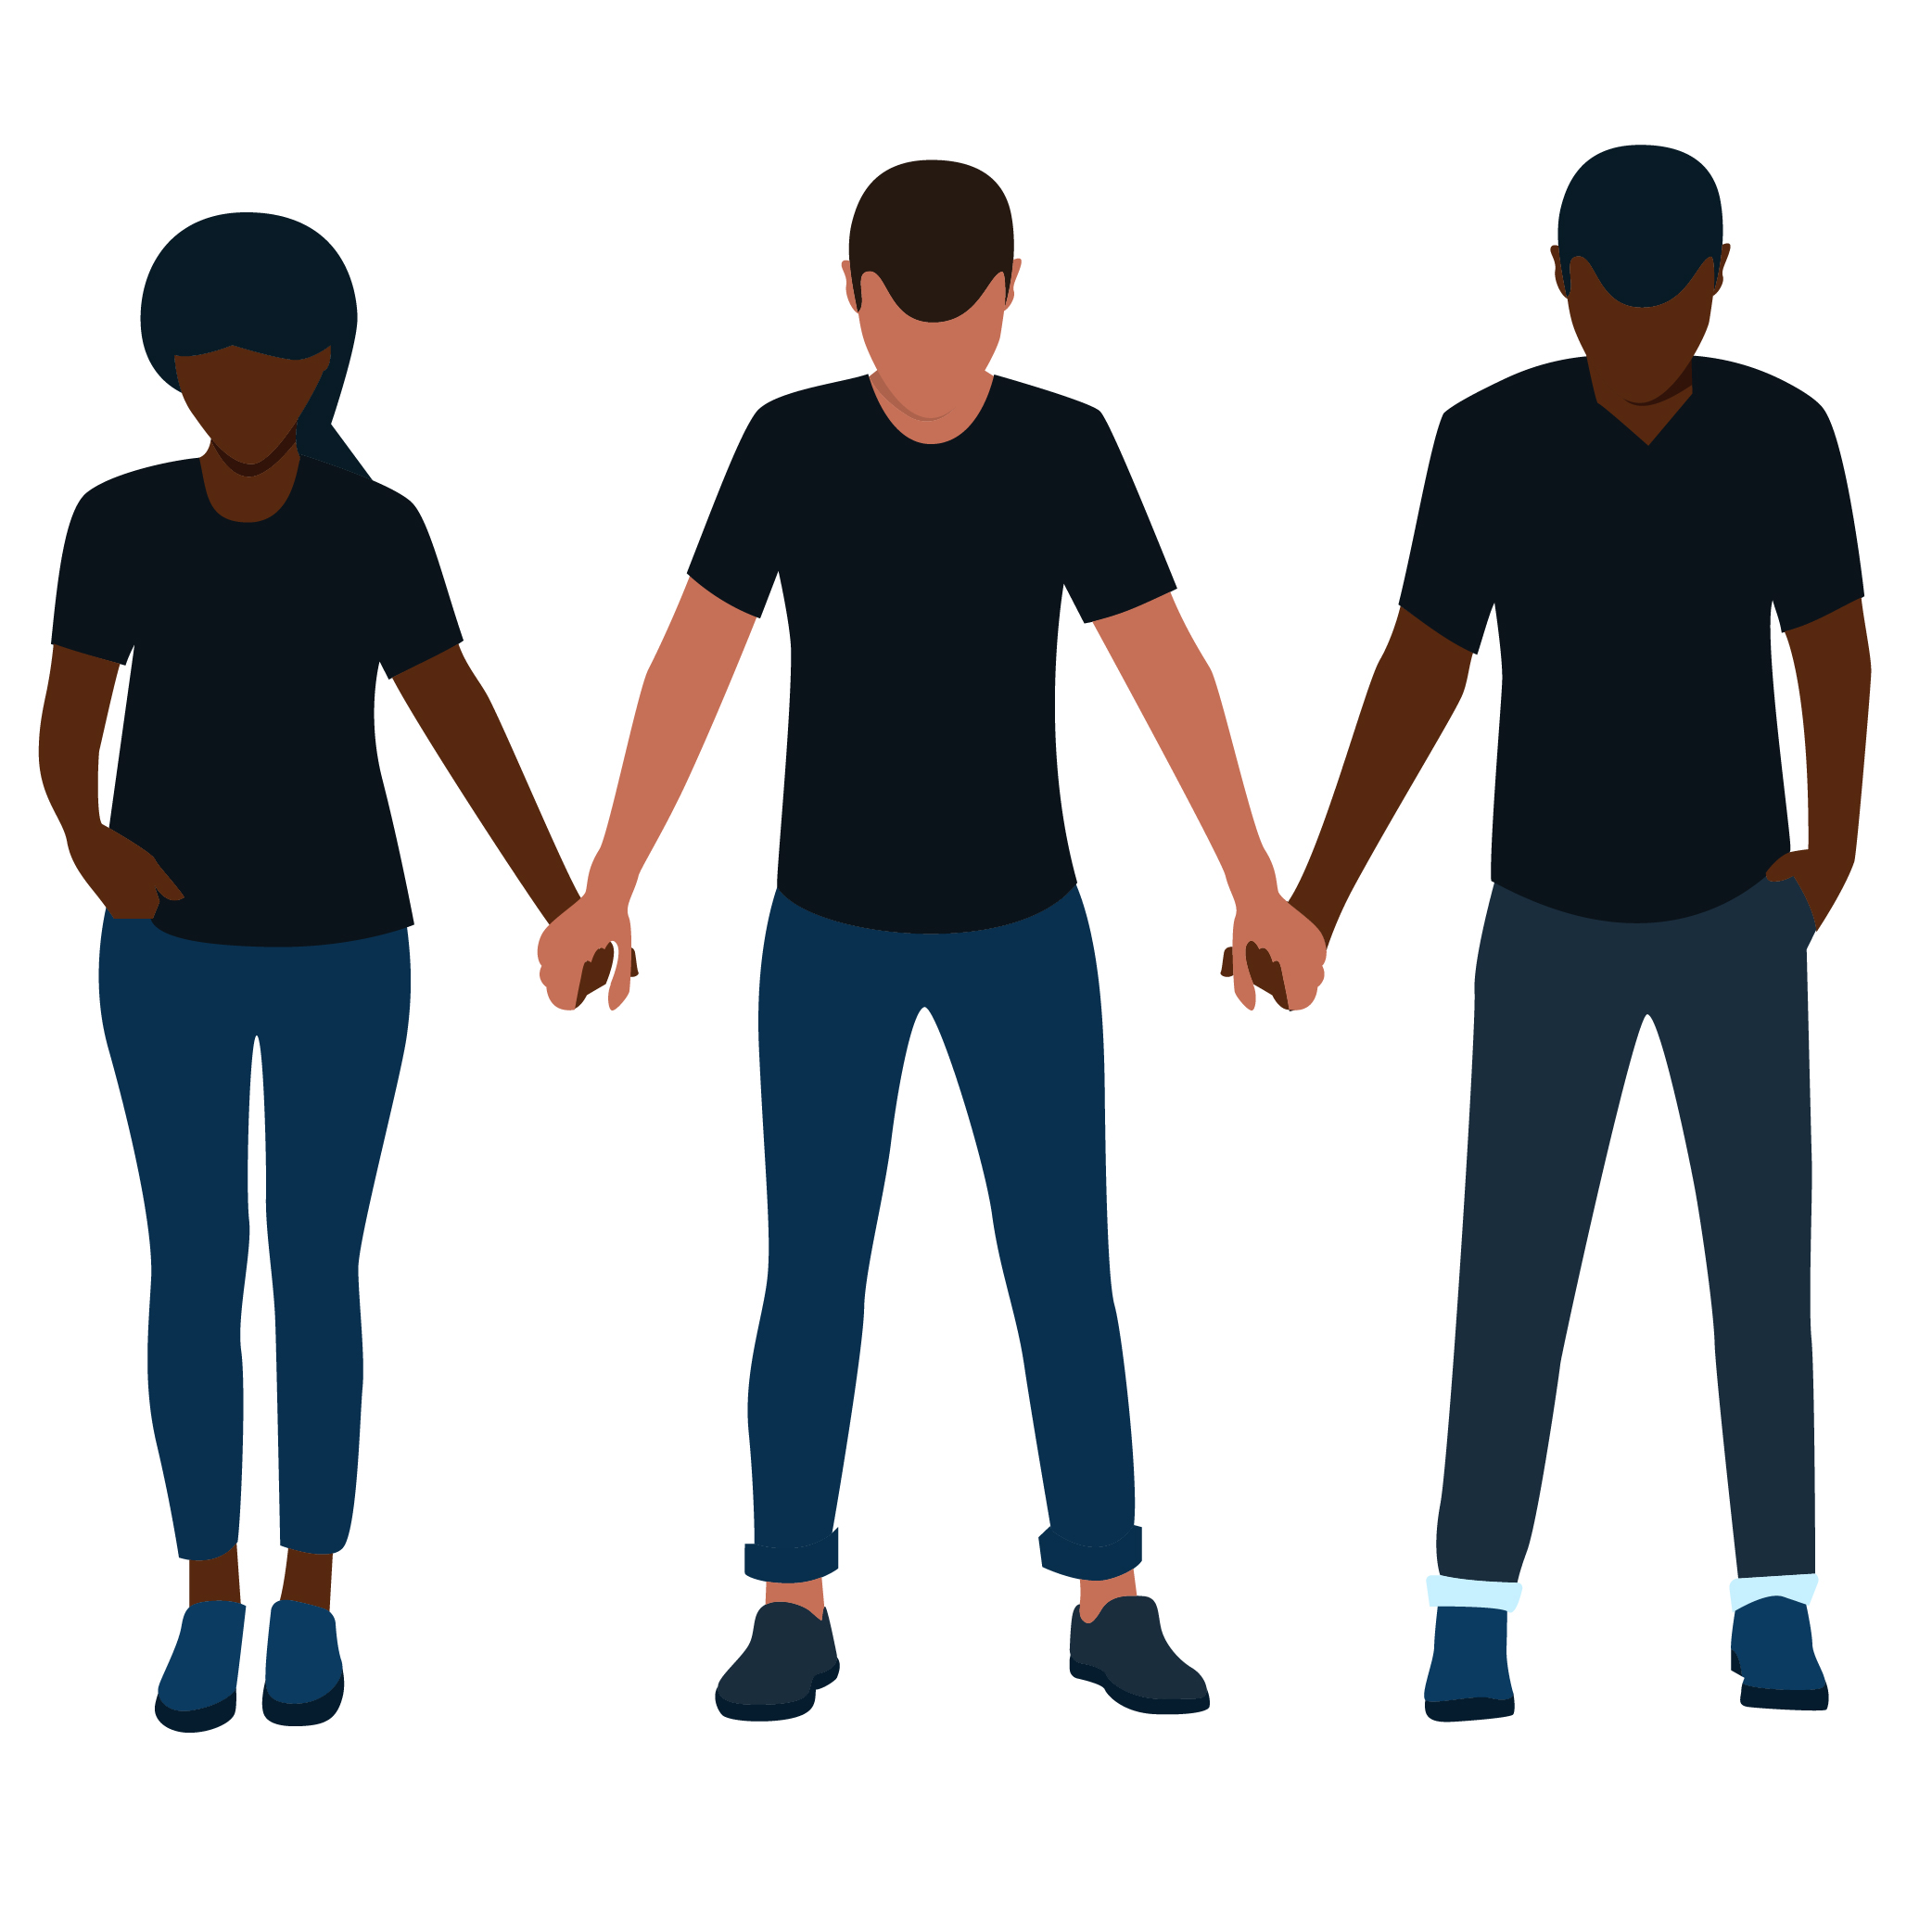 Two Black men and a Black woman stand holding hands in solidarity